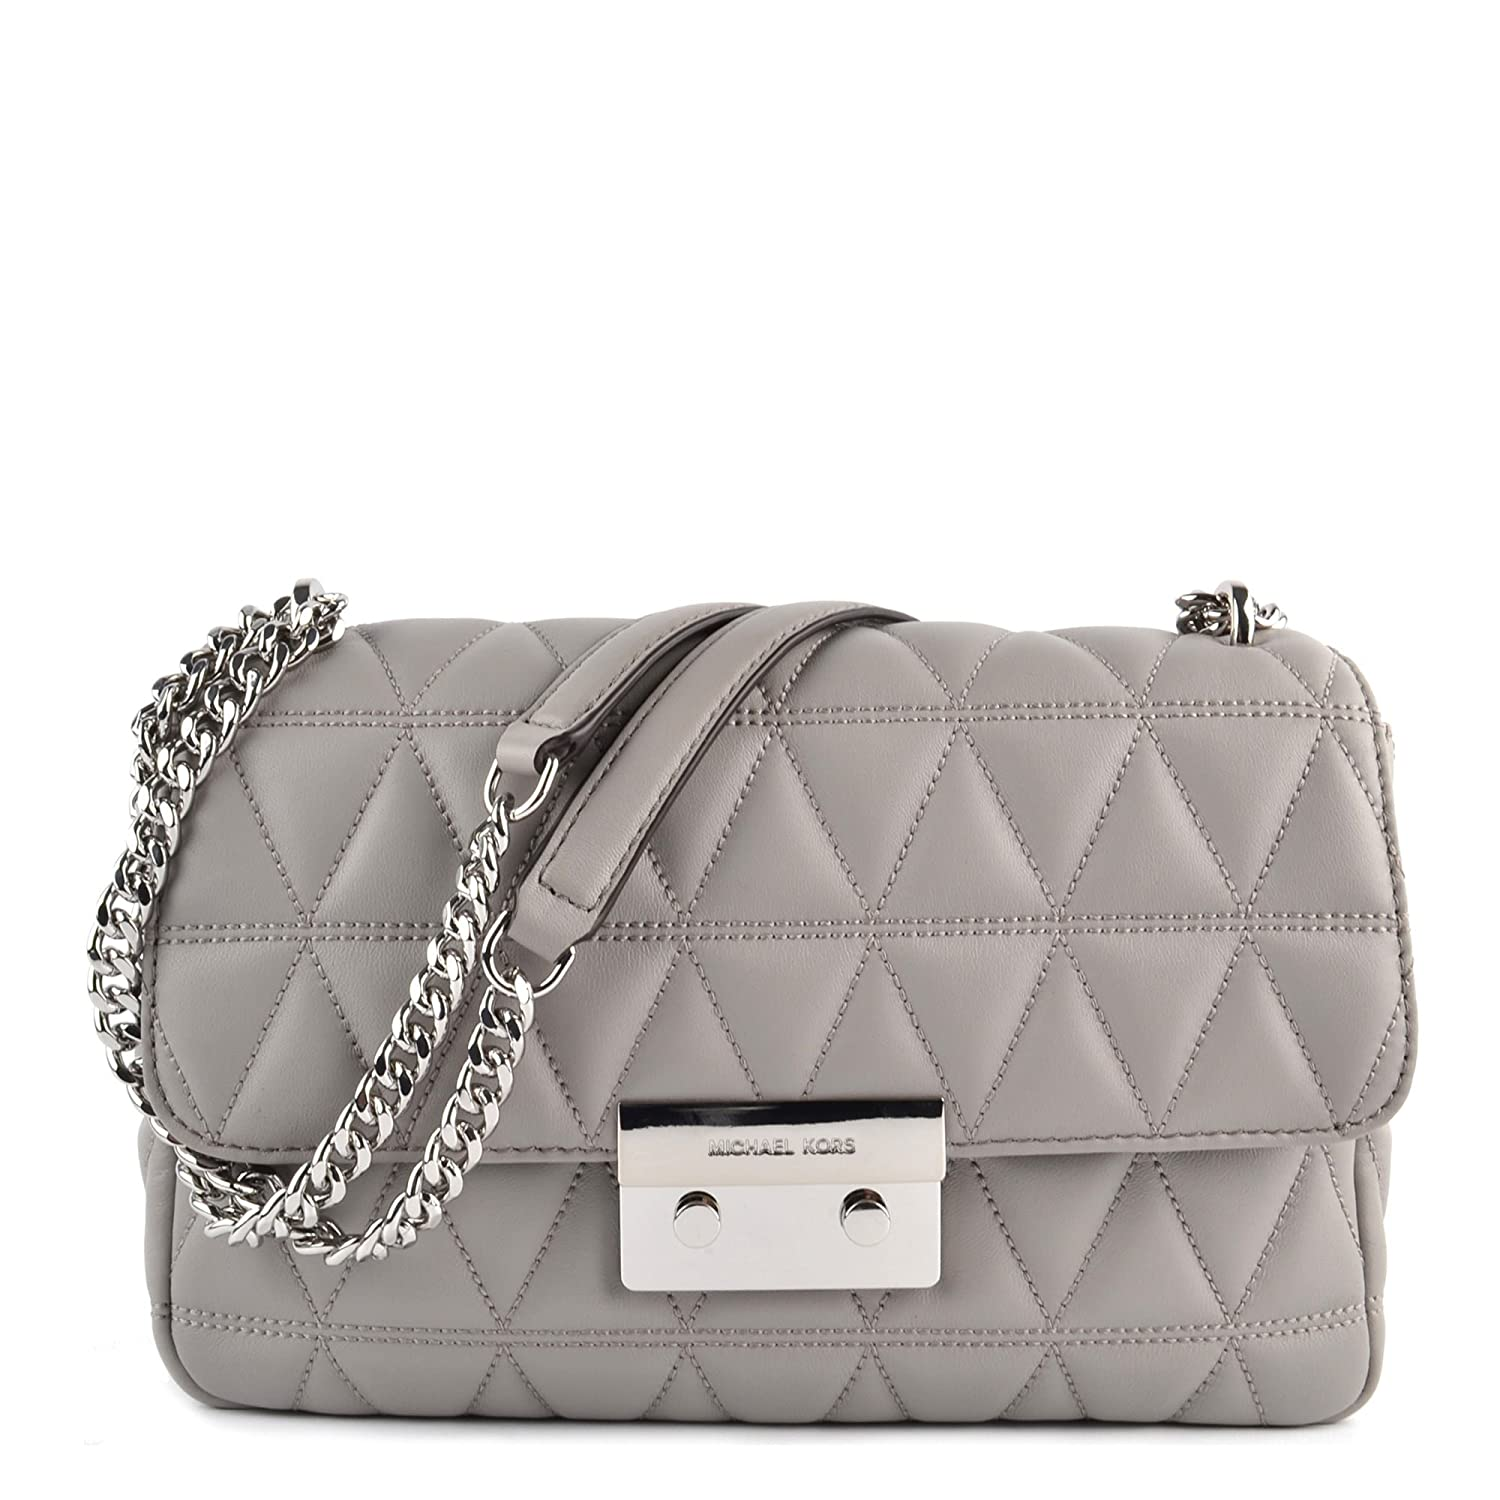 739c213e91371 MICHAEL Michael Kors Sloan Large Quilted-Leather Shoulder Bag in Pearl Grey   Handbags  Amazon.com